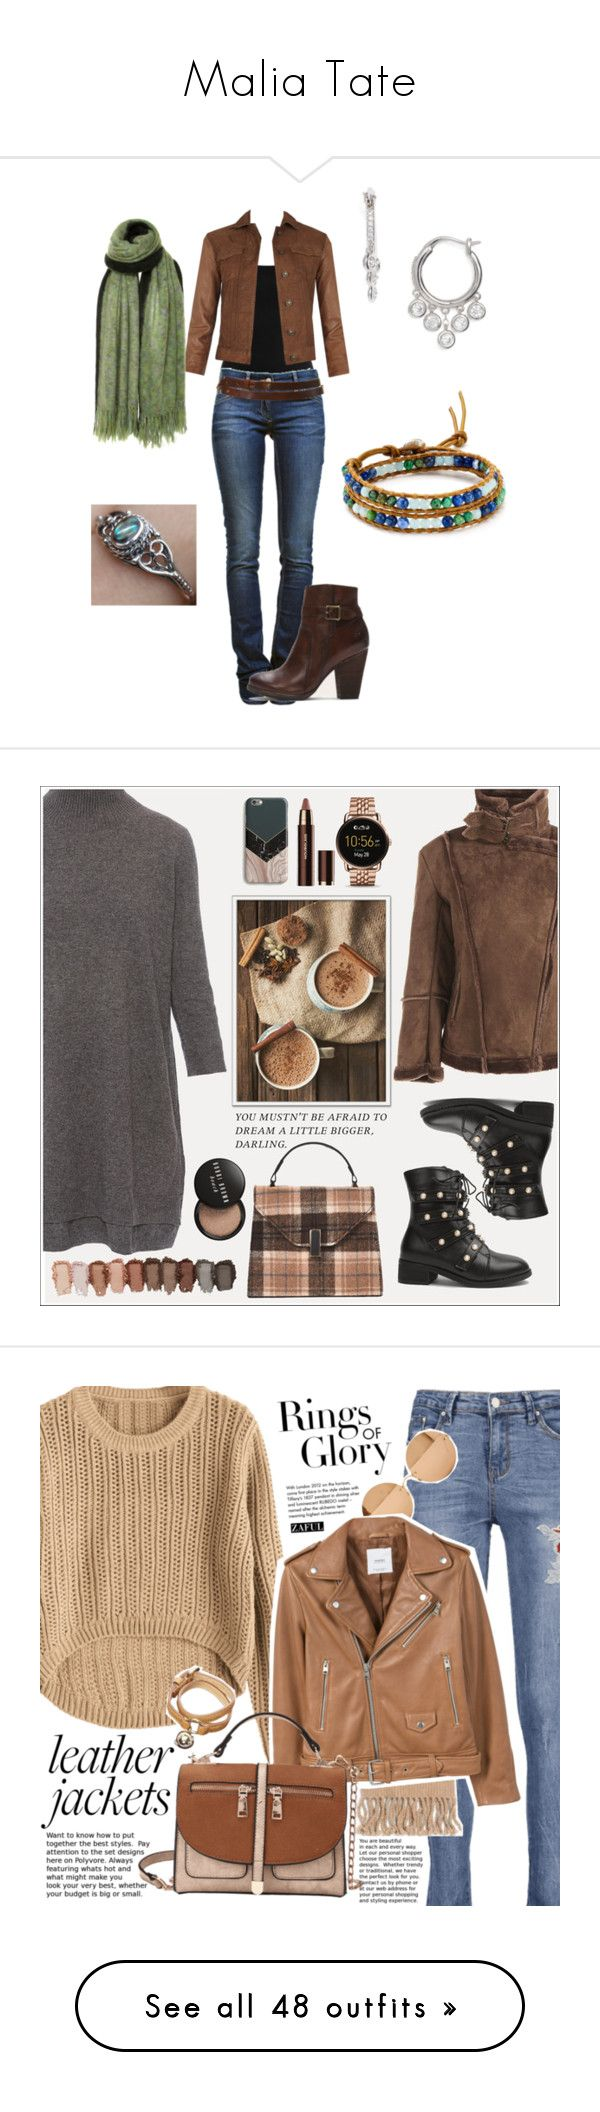 """Malia Tate"" by lydiastilinski24 ❤ liked on Polyvore featuring NIC+ZOE, Étoile Isabel Marant, Nadri, REGALROSE, AllSaints, Chan Luu, Frye, Isabel Marant, bags and handbags"